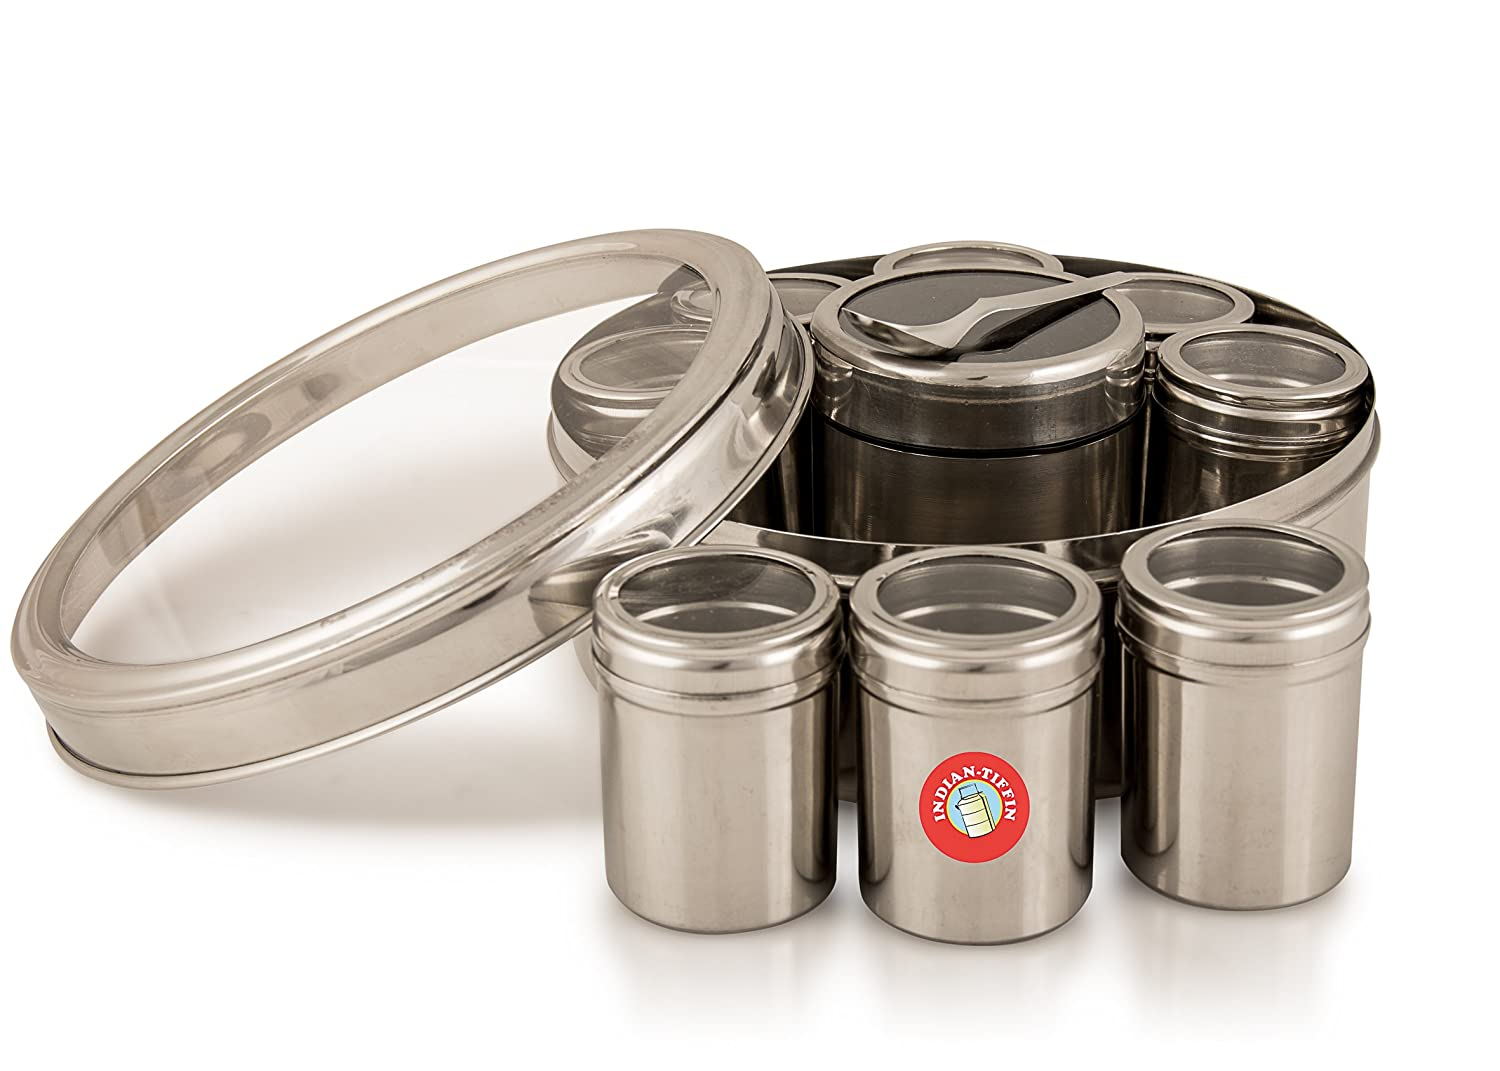 Authentic Indian Masala Dabba Spice Box with airtight lids (clear lid) Indian-Tiffin 3SISMDCL